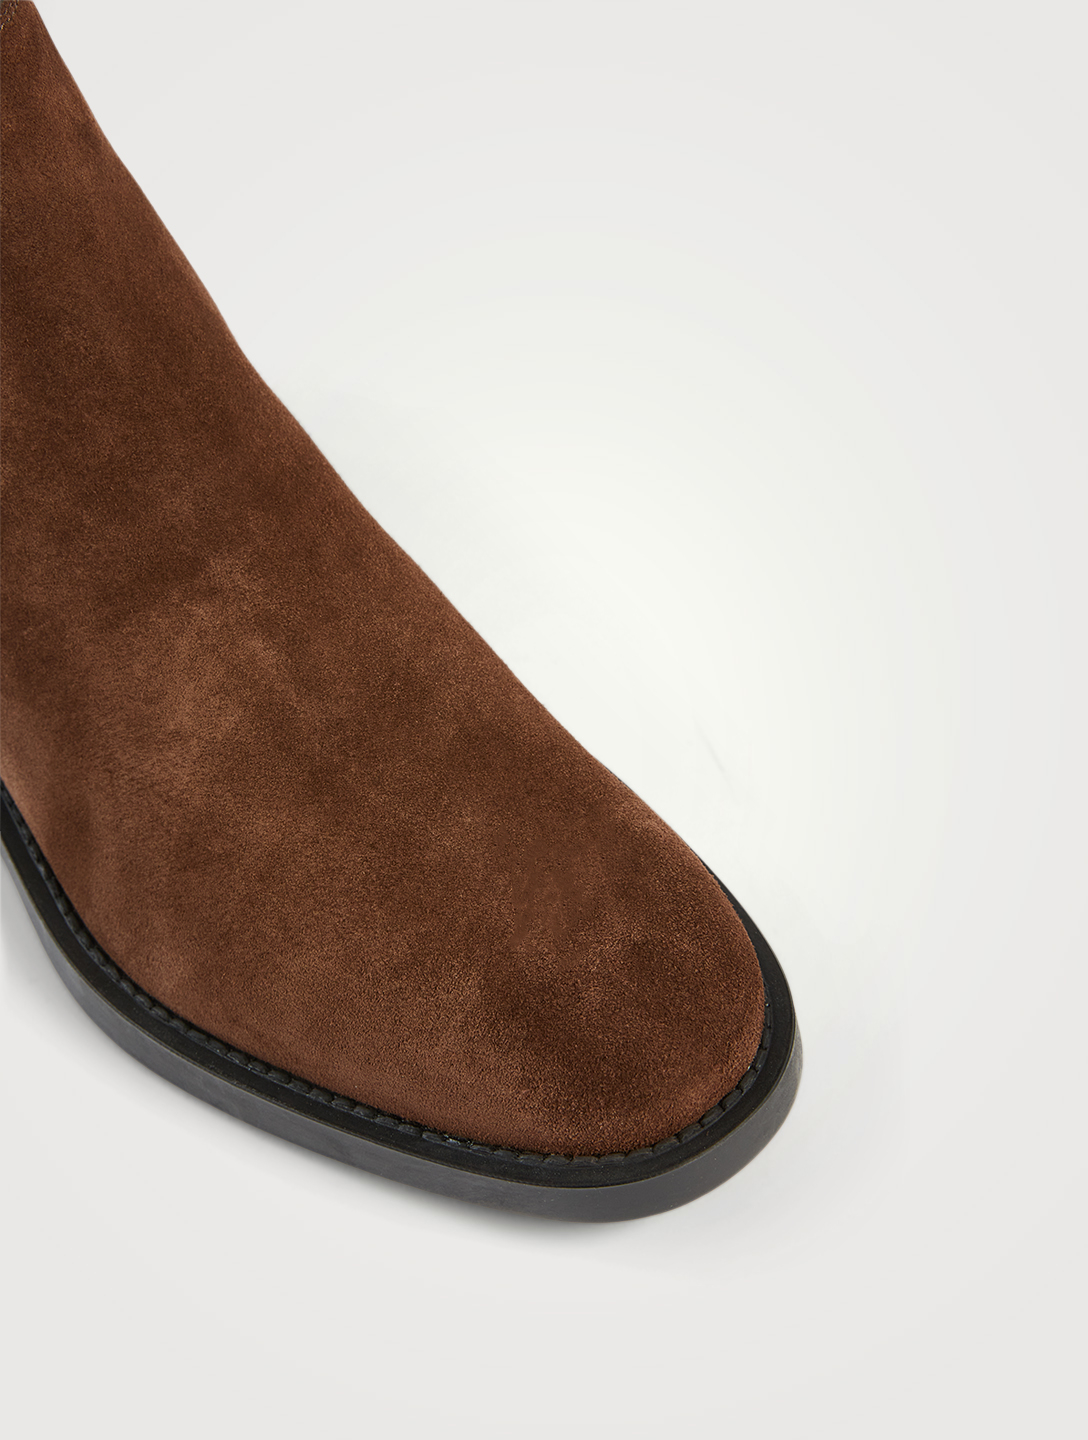 TOD'S Suede Chelsea Boots Women's Brown